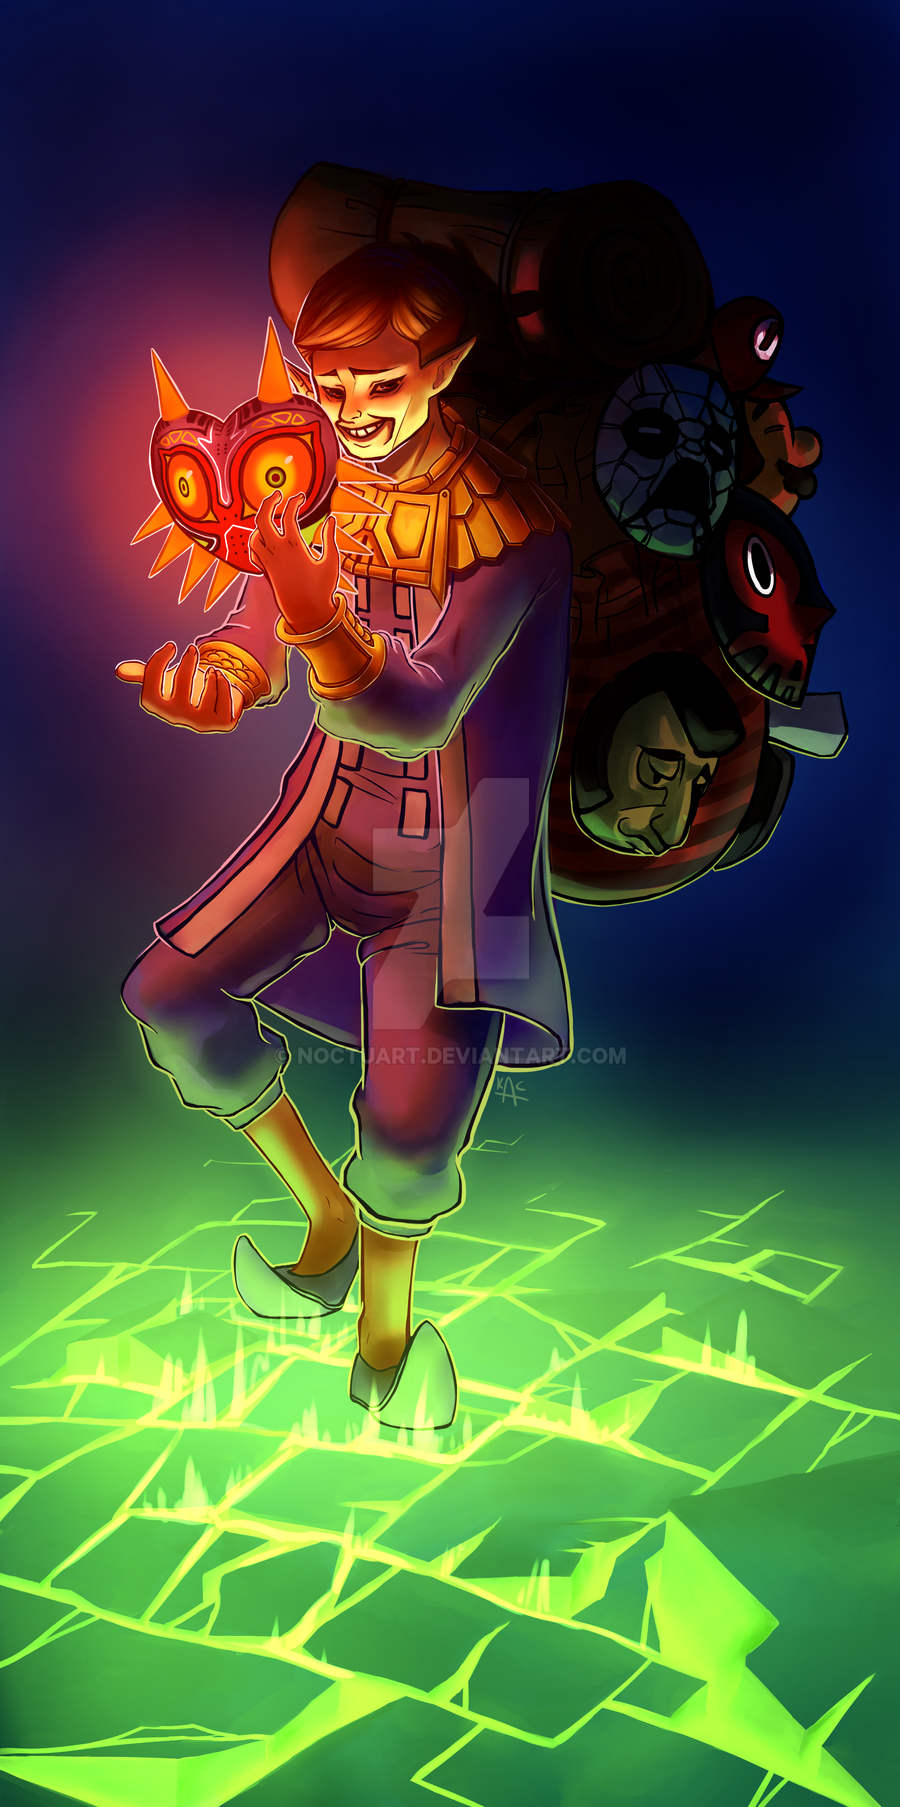 You've met with a terrible fate, haven't you? by Keikilani